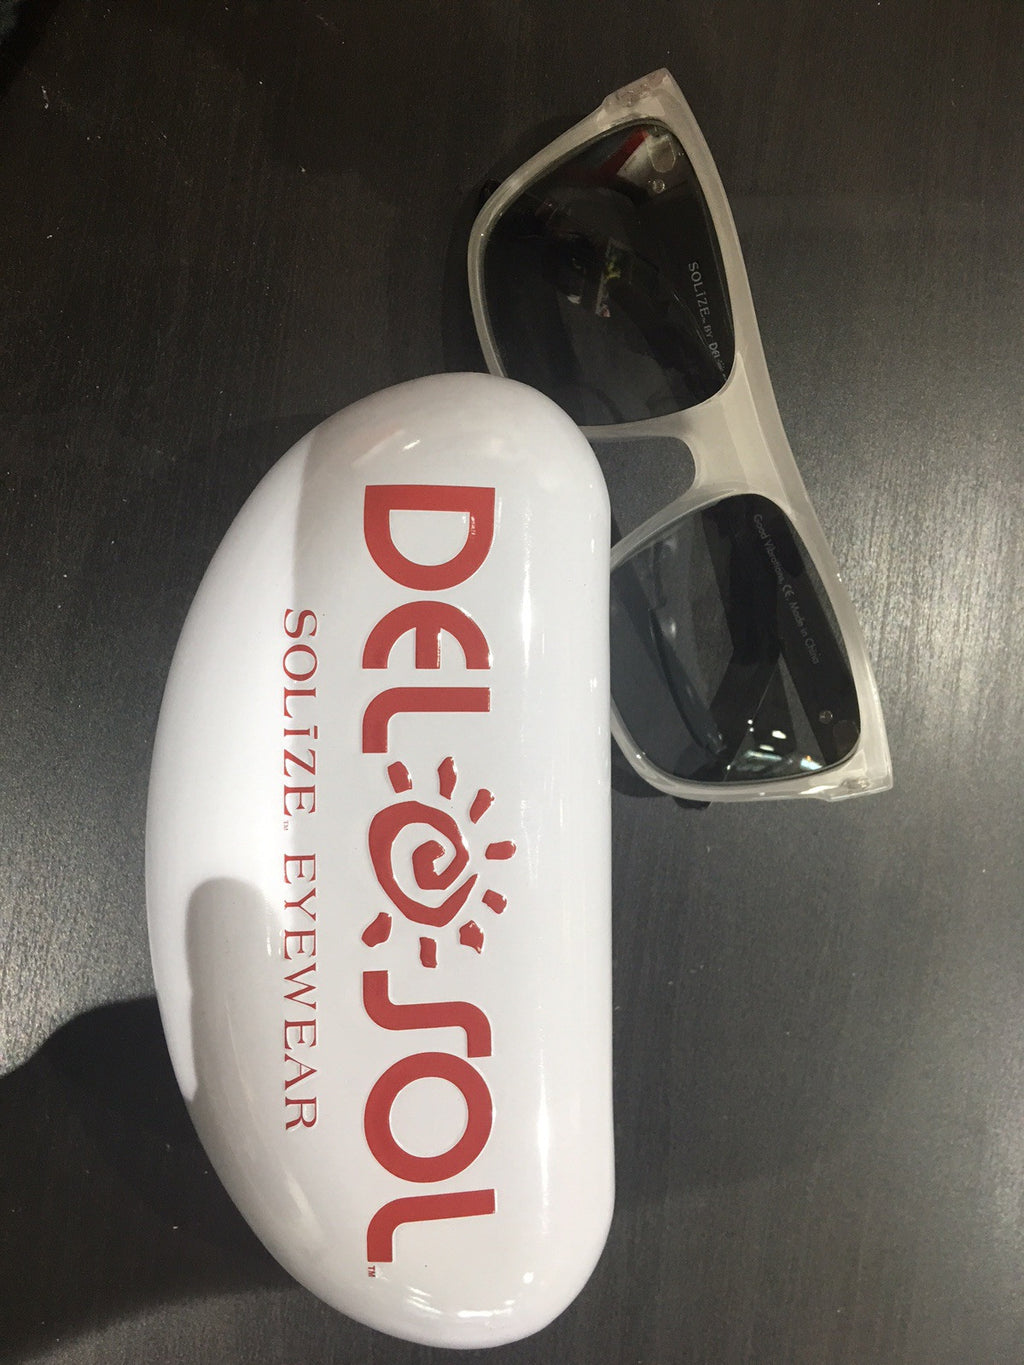 Del Sol Polarised Sunglasses - Good Vibrations